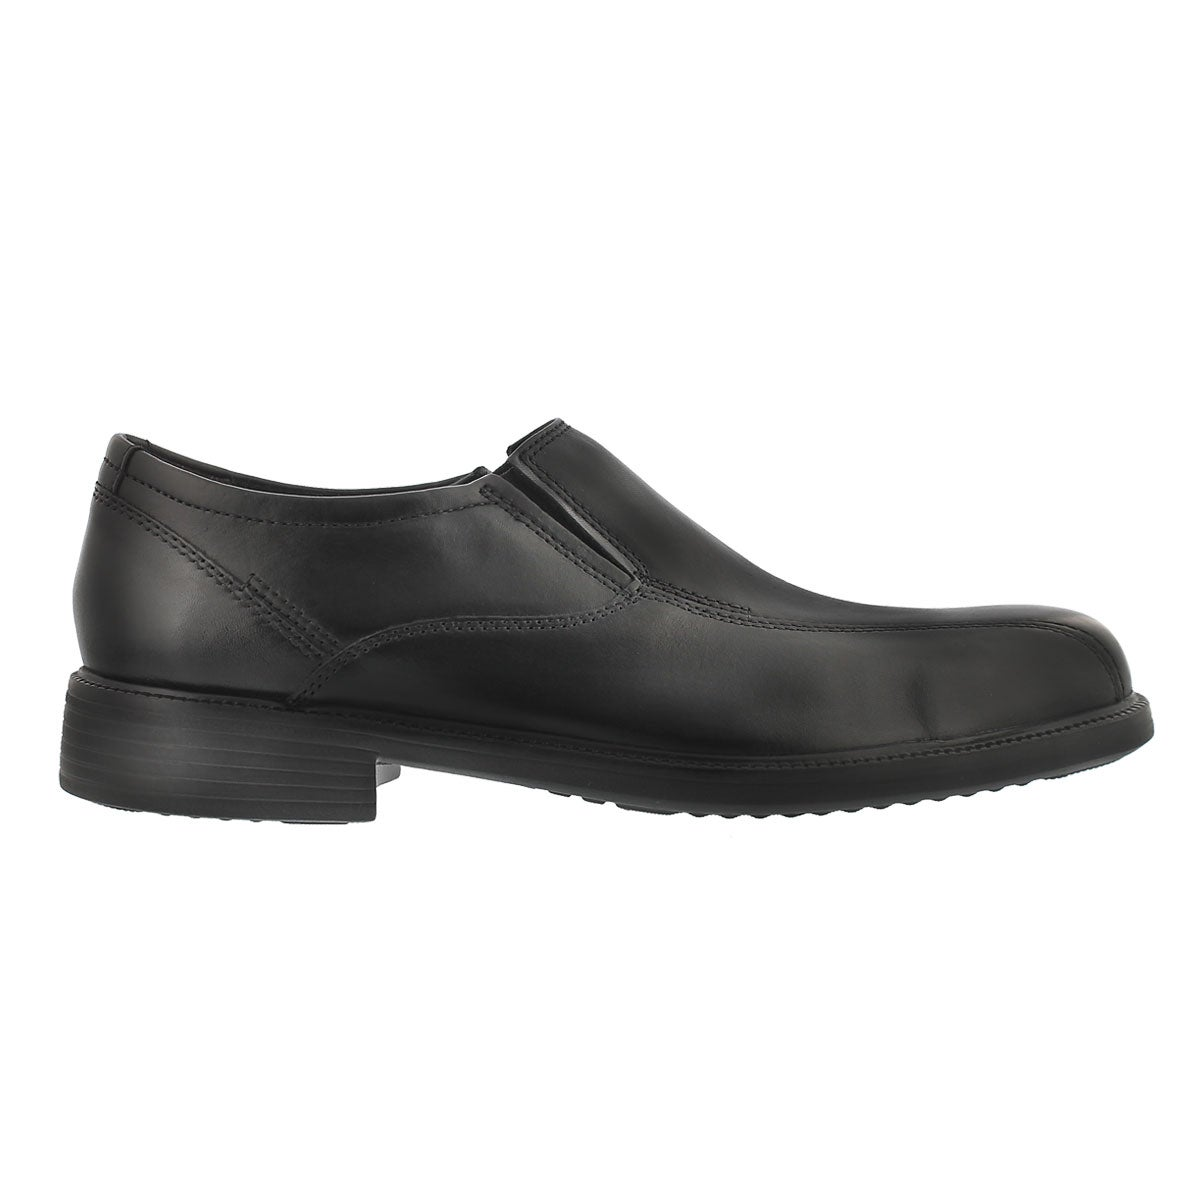 Mns Bardwell Step blk slip on dress shoe